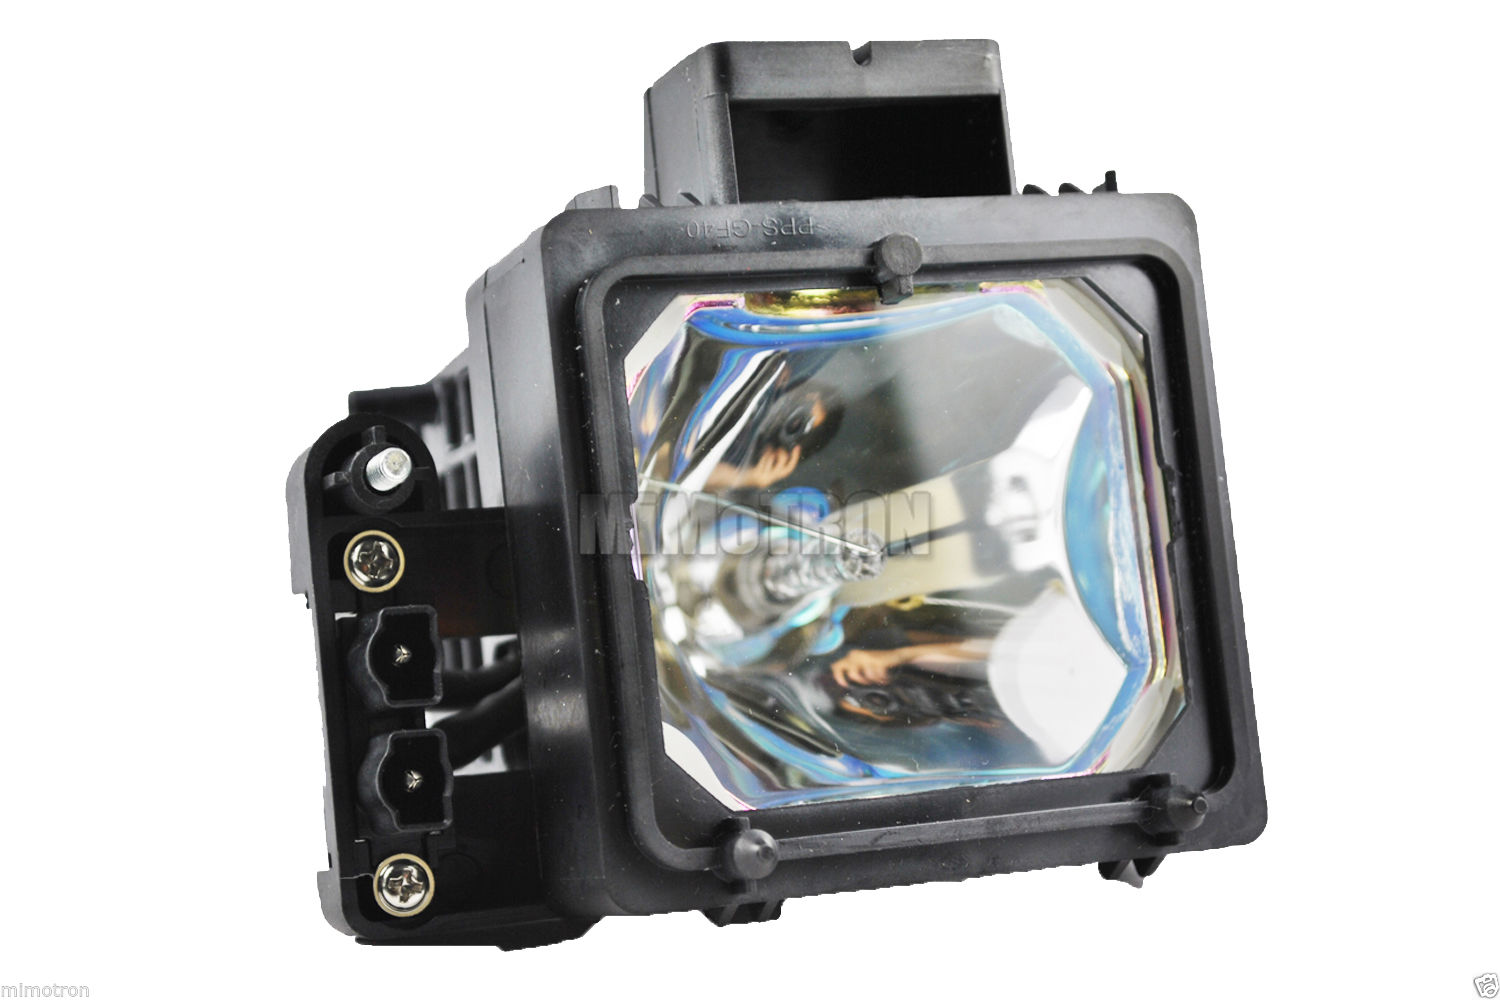 KDF-55XS955 KDF-E60A20 Televisions KDF-E55A20 Tawelun TV Lamp XL-2200 Replacement Lamp with Housing Suit for KDF-60XS955,KDF60XS955,KDF-55WF655